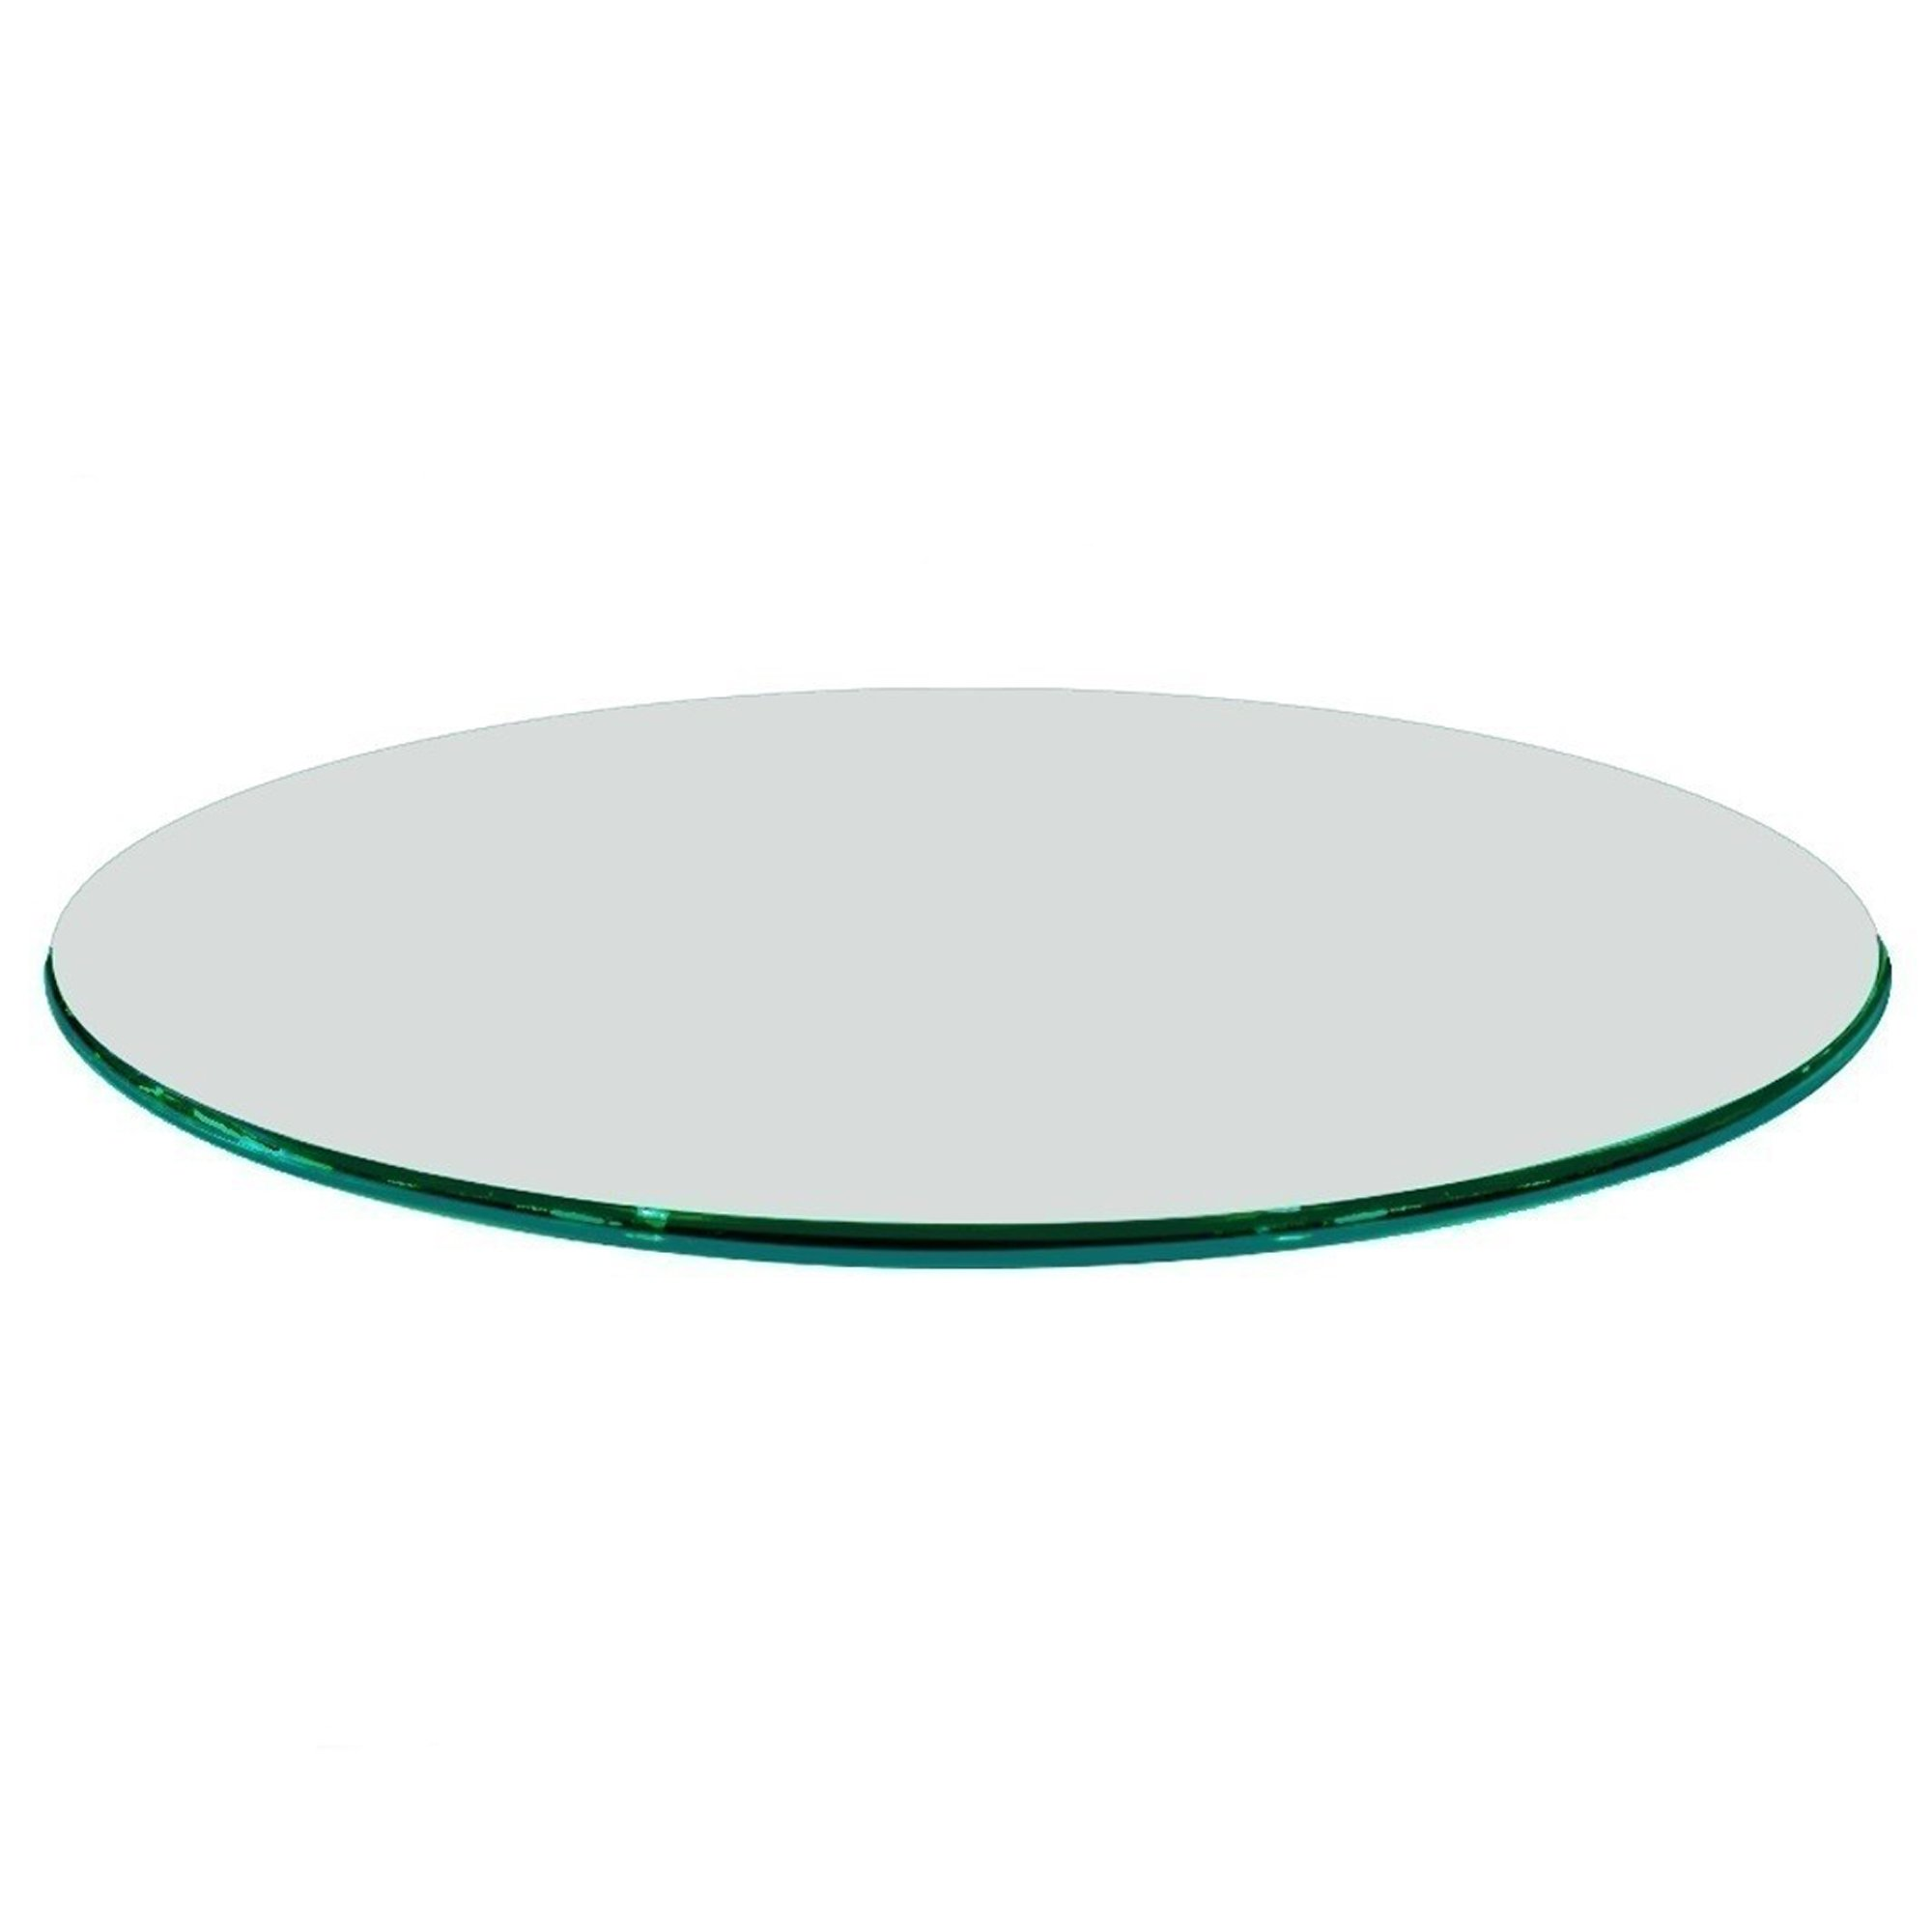 Fab Glass and Mirror 30RD19MMOGTE 30'' Inch Round Glass Table Top 3/4'' Thick Tempered Ogee Polish, 30 Inch, Clear by Fab Glass and Mirror